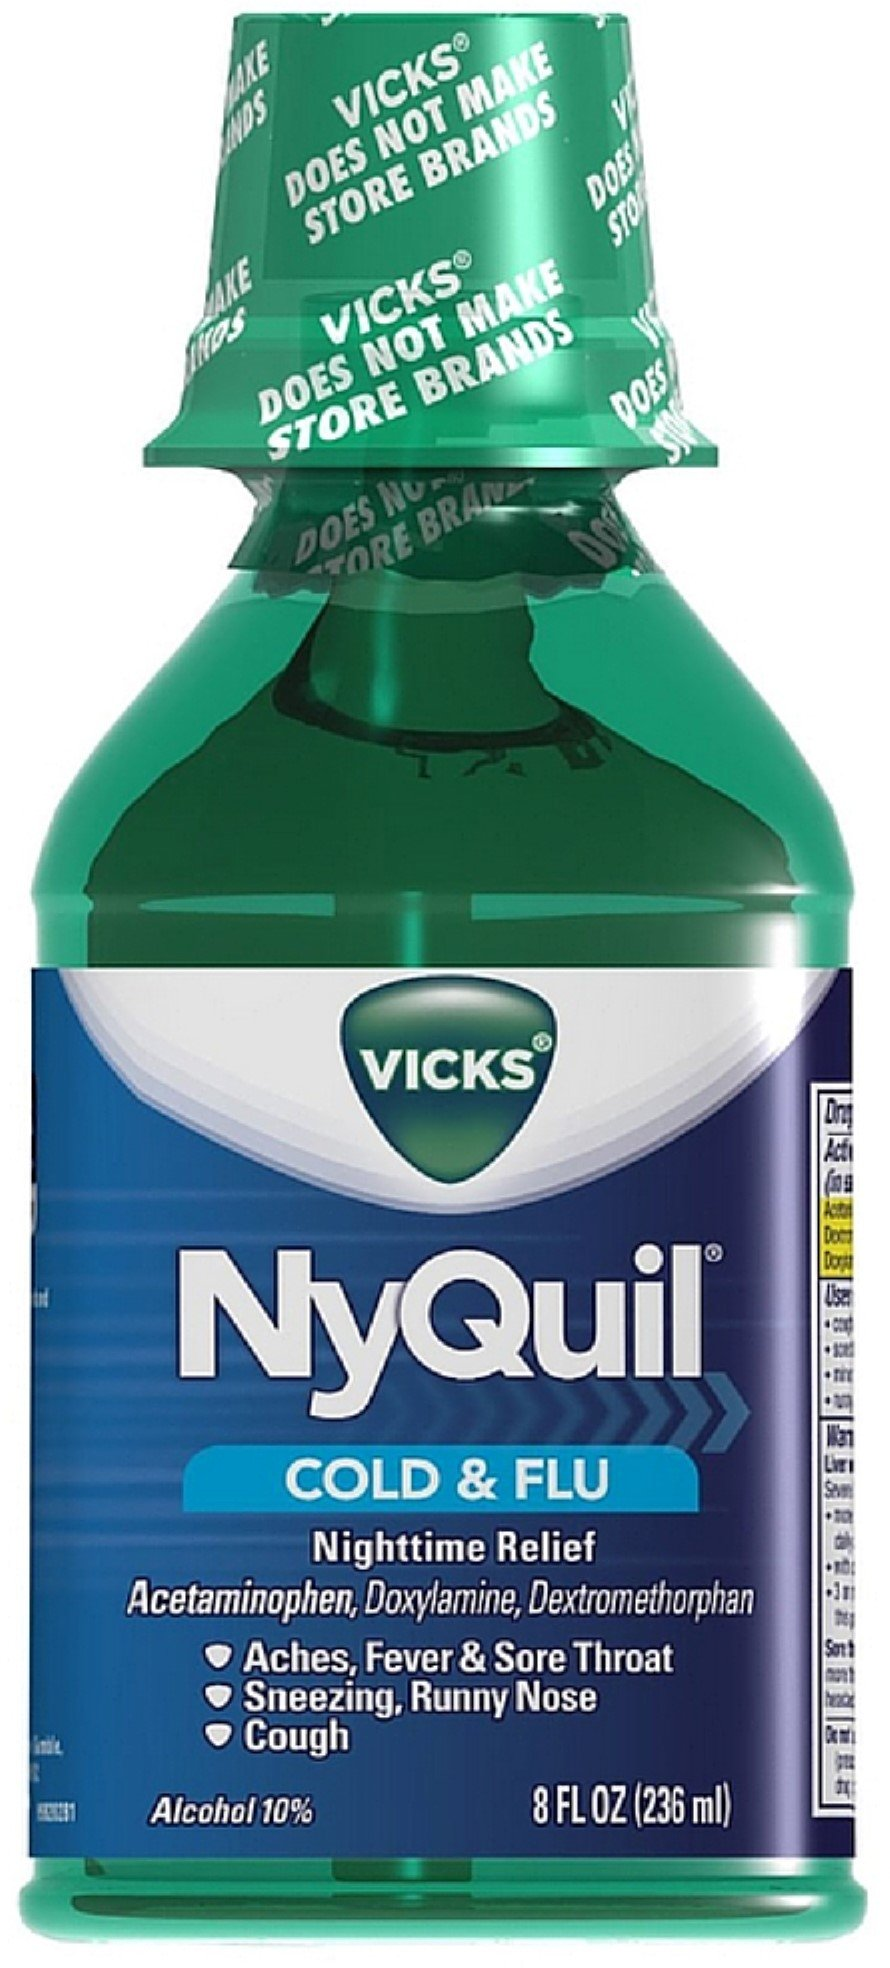 Vicks Nyquil Cold & Flu Nighttime Relief Liquid, Original Flavor 8 oz (Pack of 11)